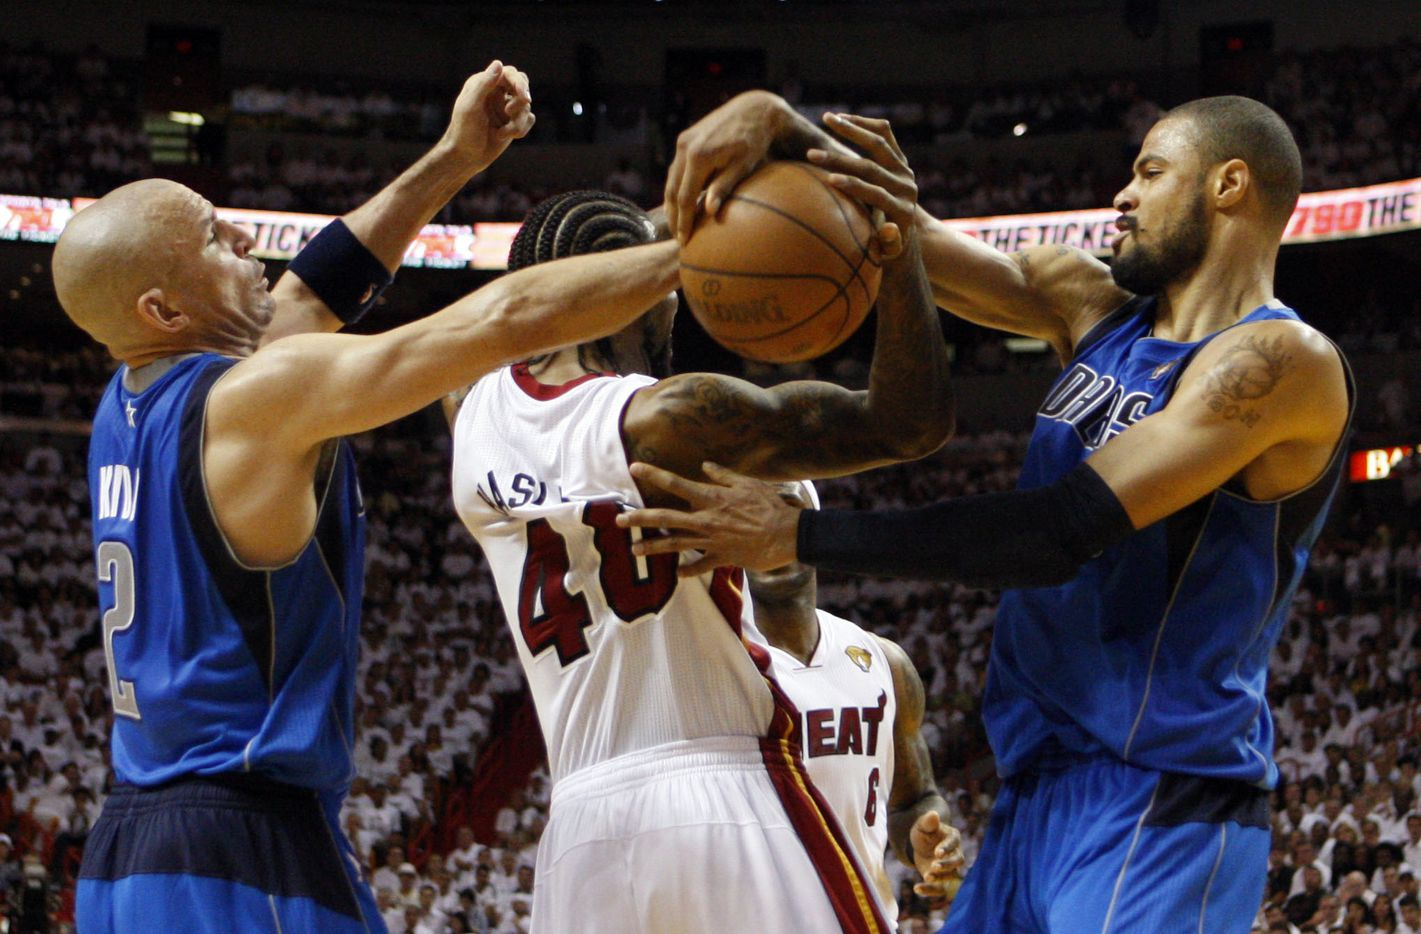 Dallas Mavericks point guard Jason Kidd (2) and Dallas Mavericks center Tyson Chandler (6) strip the ball from Miami Heat power forward Udonis Haslem (40) during the third quarter of play in Game 1 of the NBA Finals at American Airlines Arena in Miami, on May 31, 2011. (Vernon Bryant/The Dallas Morning News)